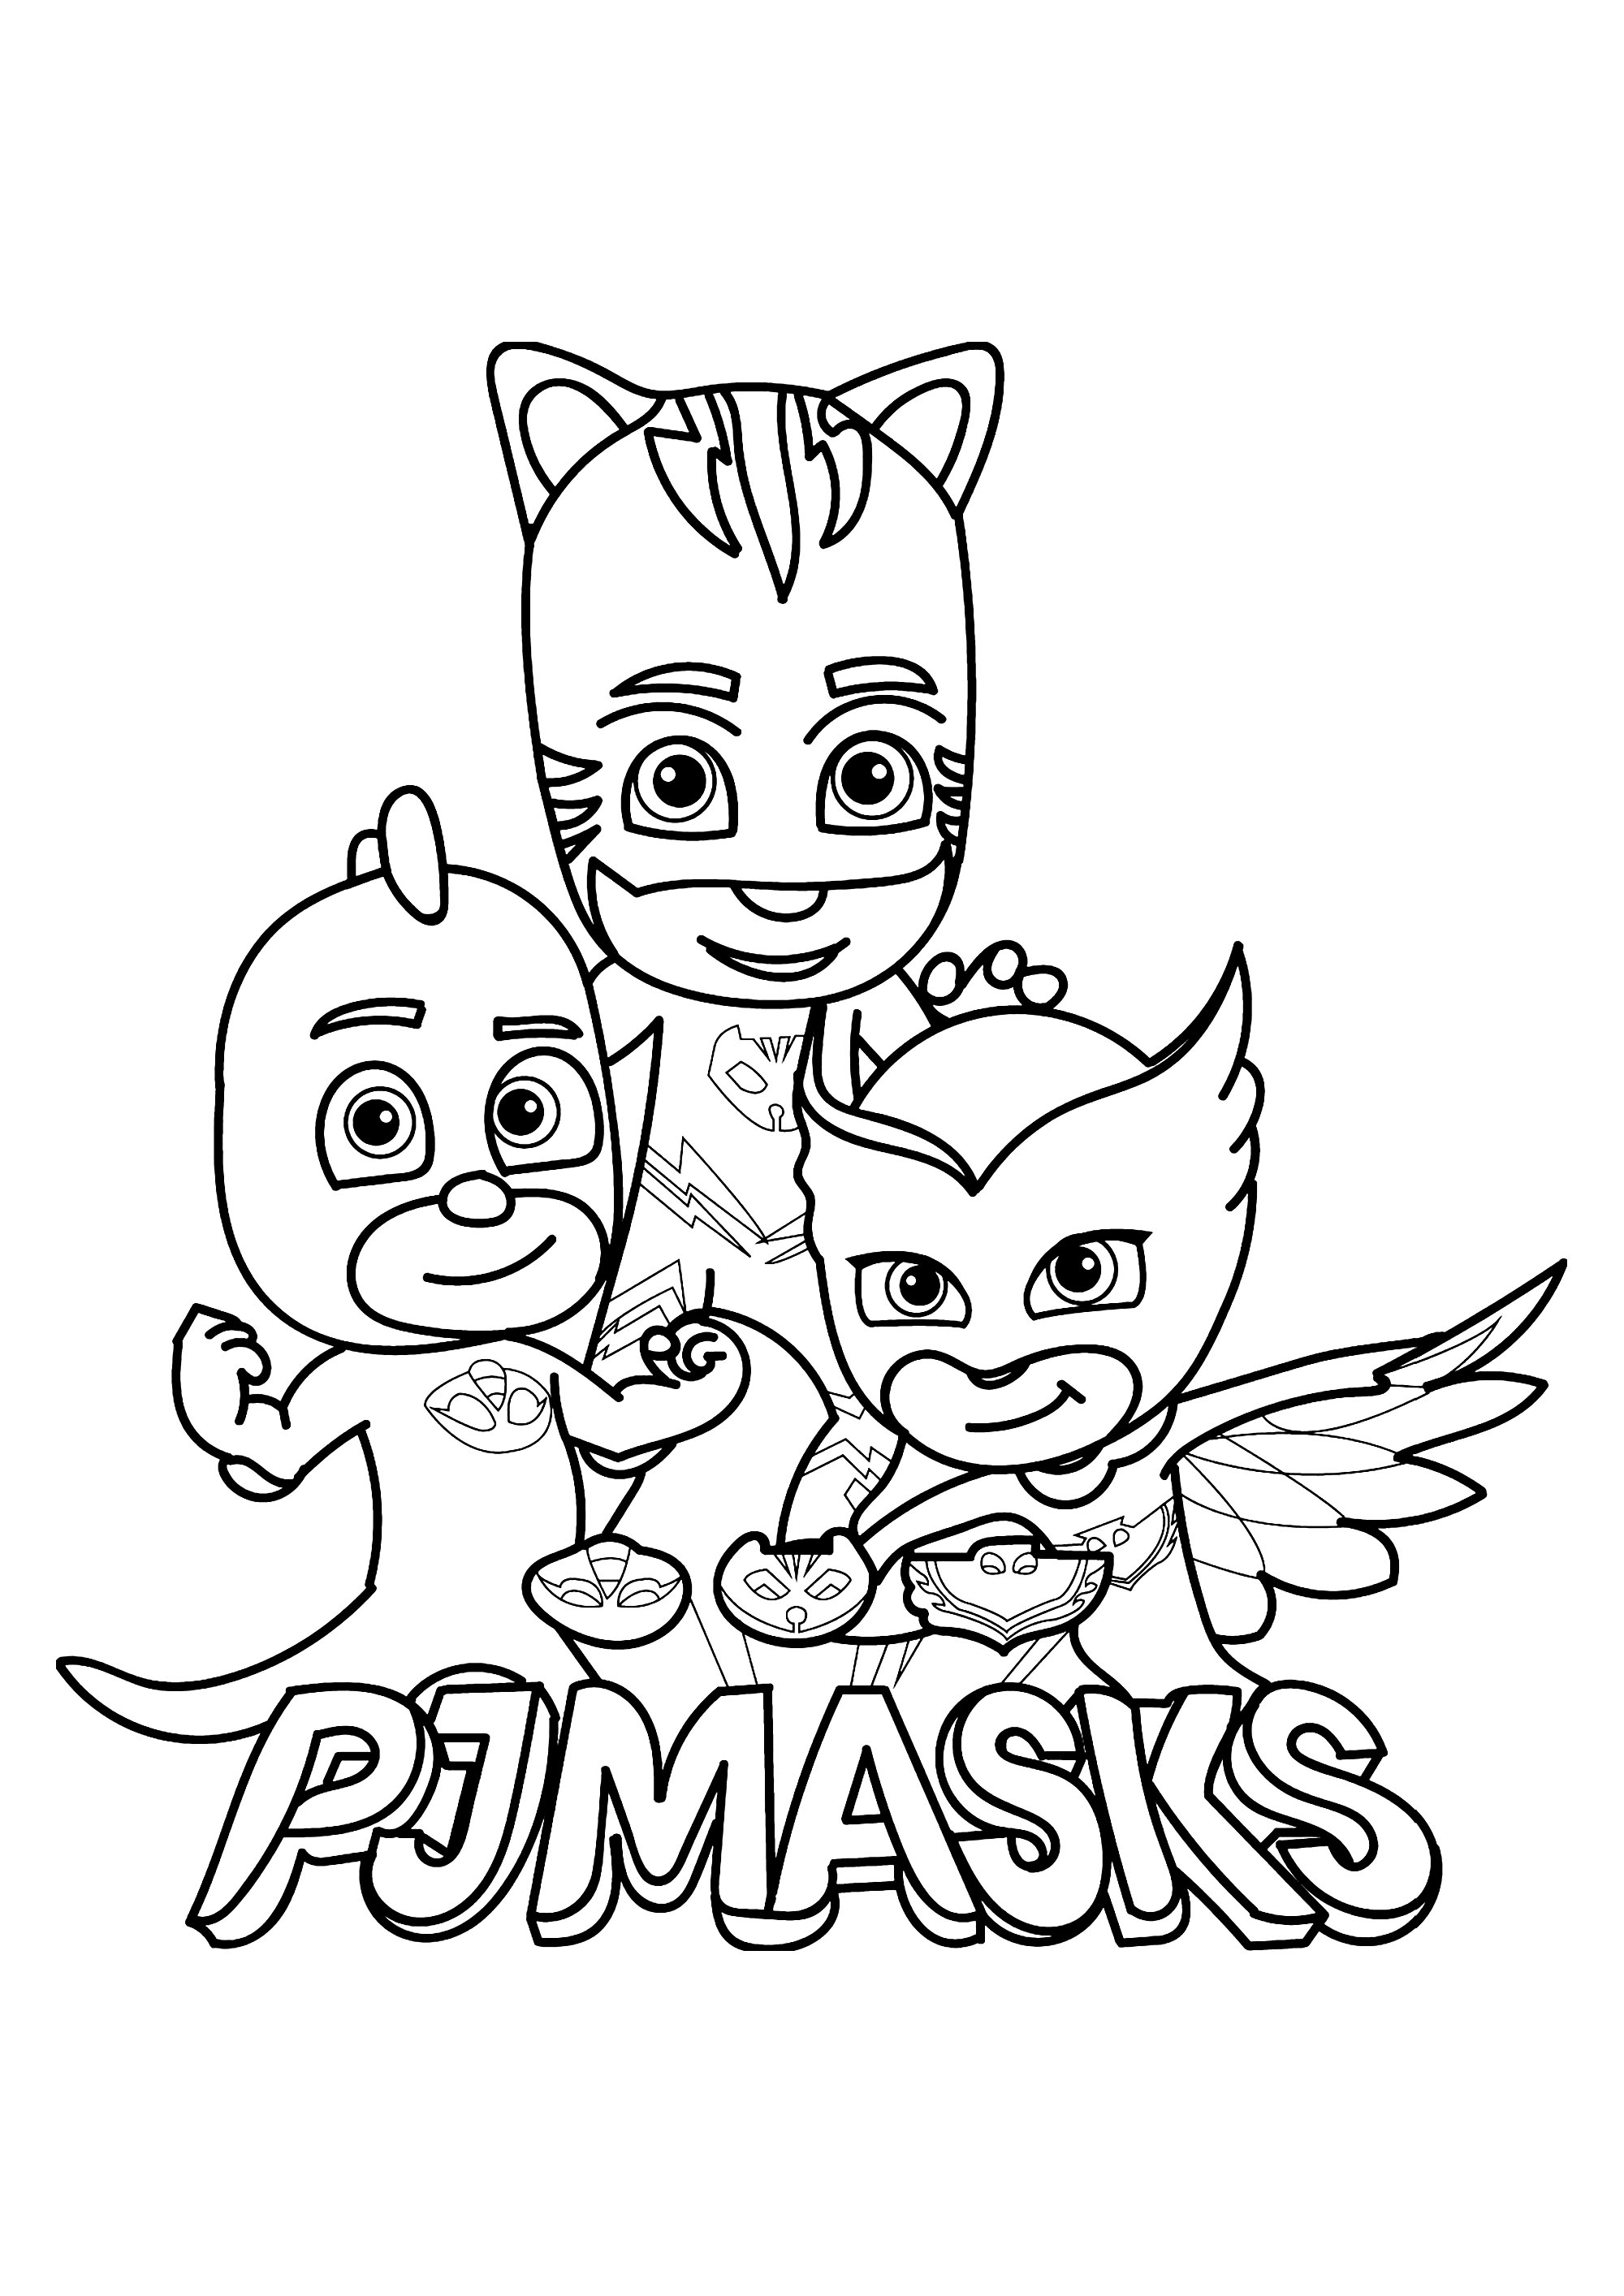 Funny PJ Masks coloring page for children